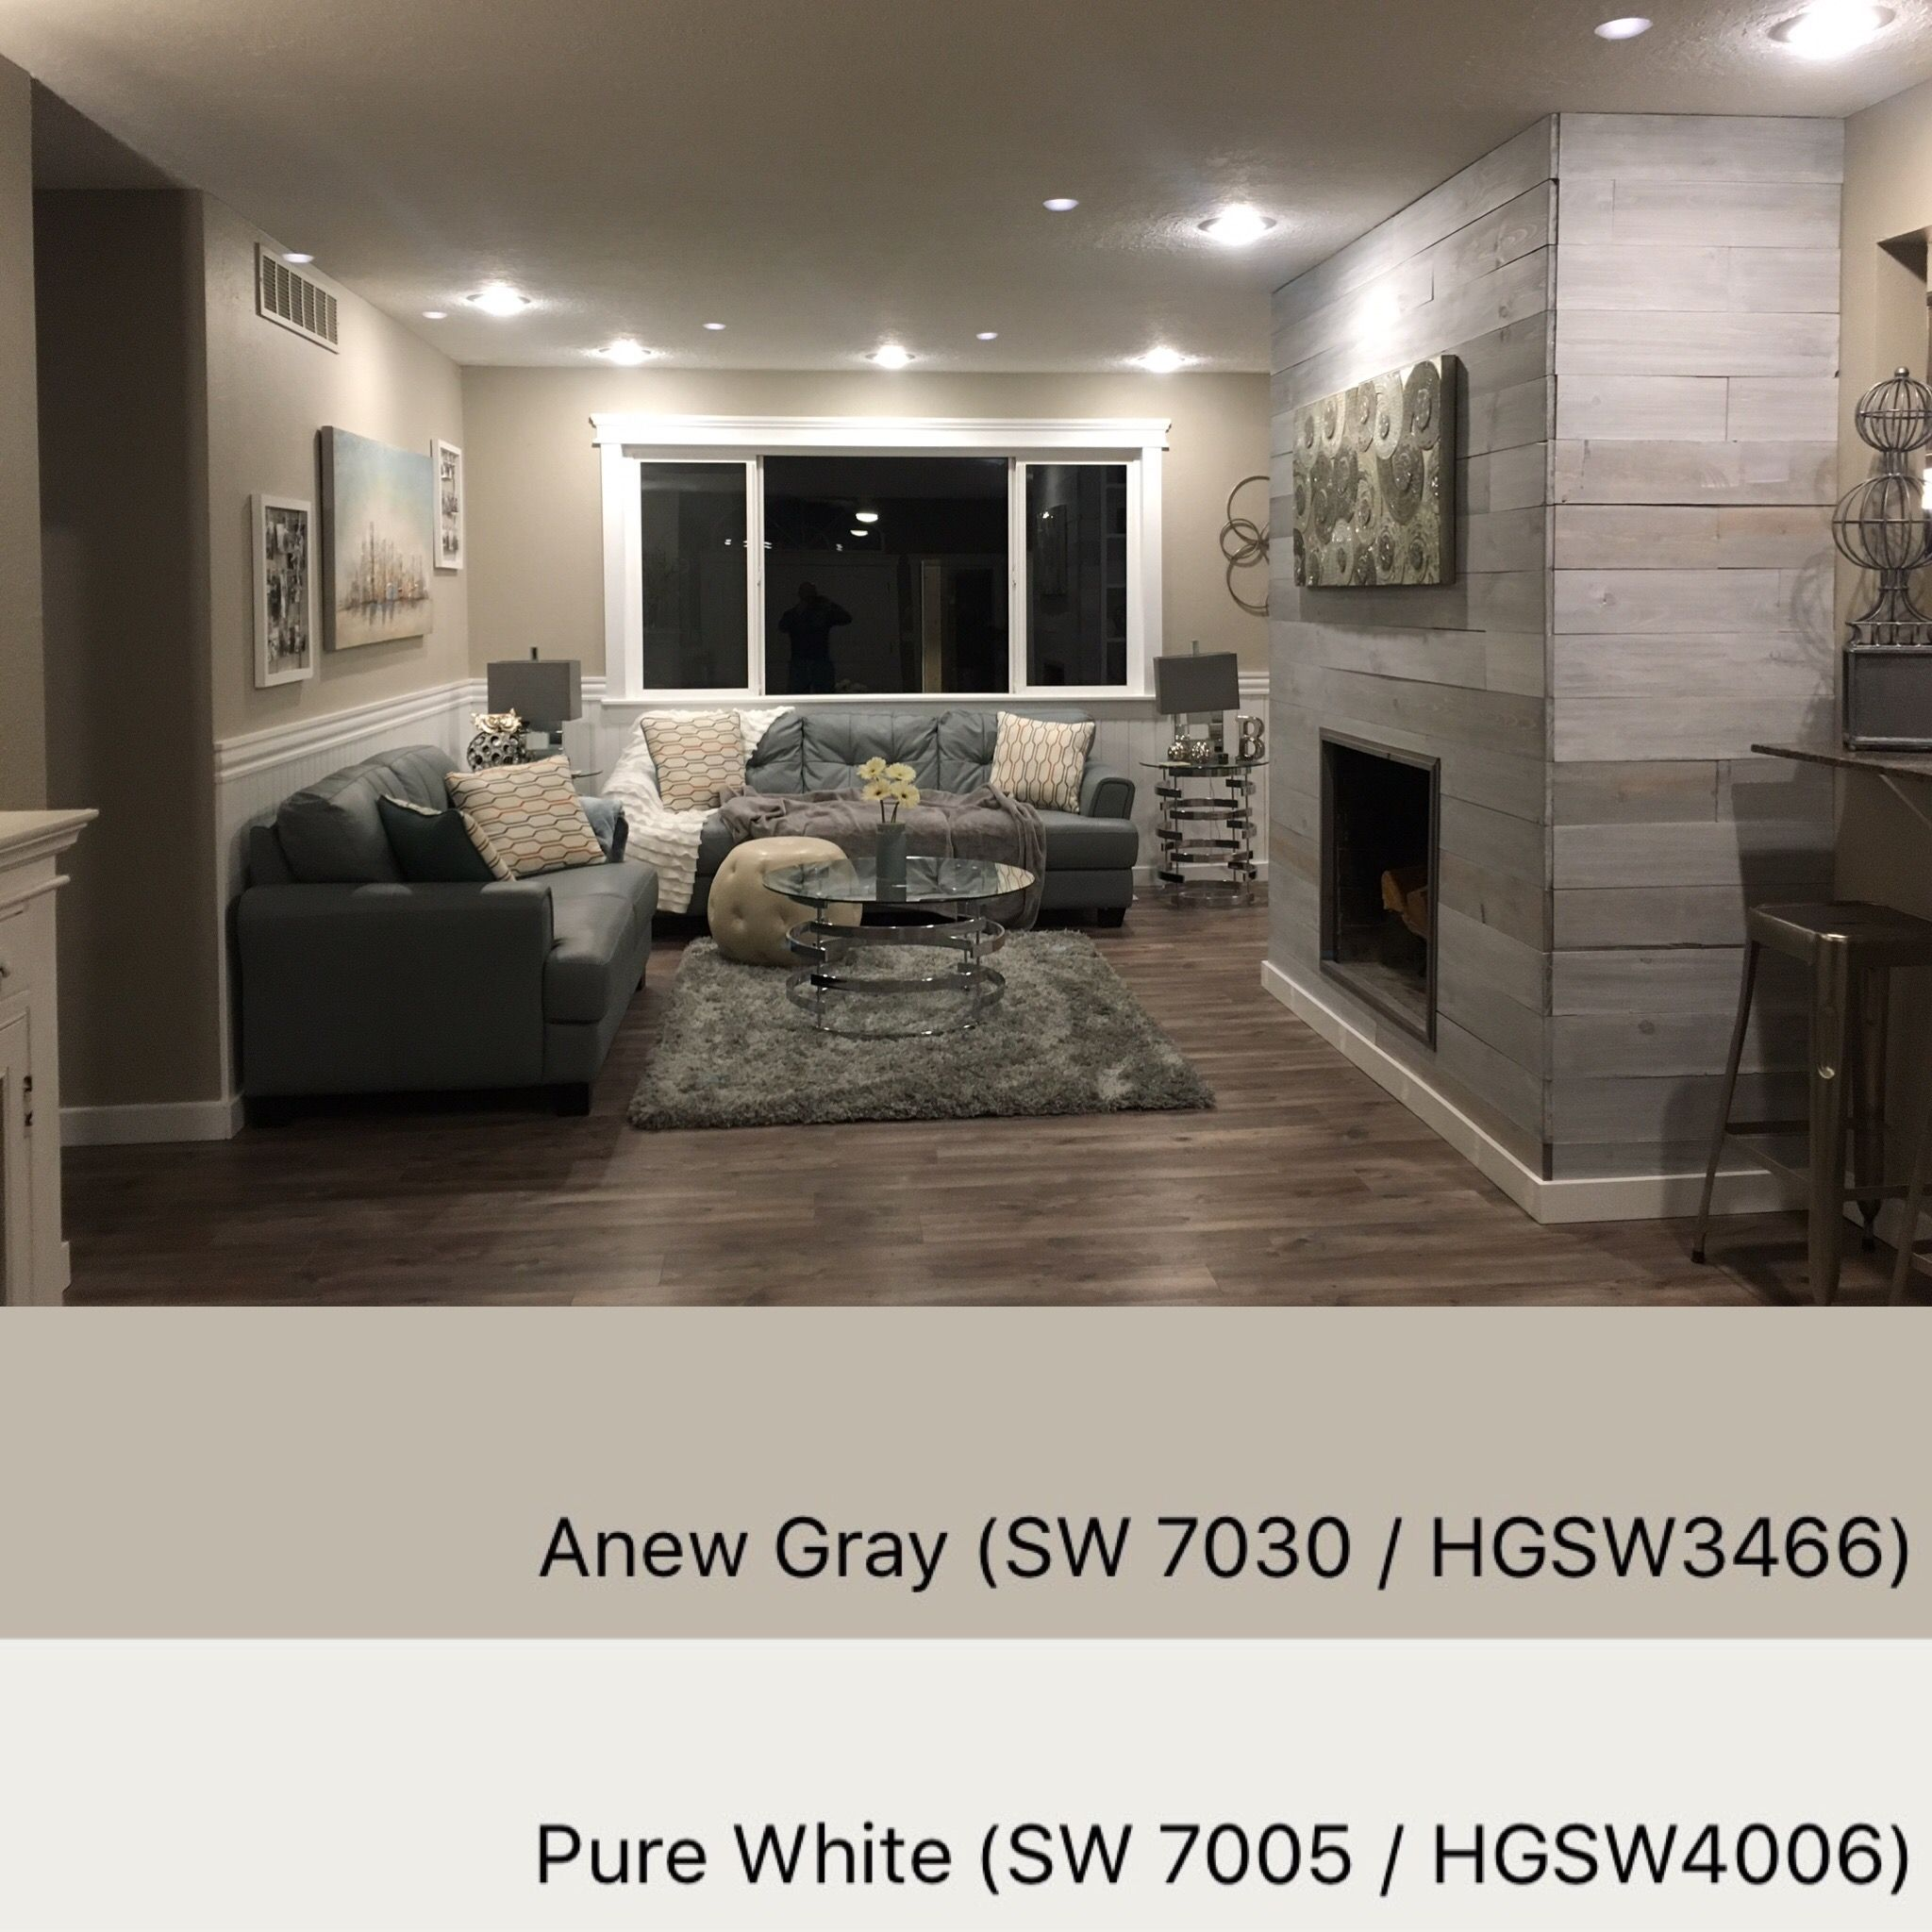 Best Sherwin Williams Paint Colors Anew Gray 7030 Pure White 640 x 480